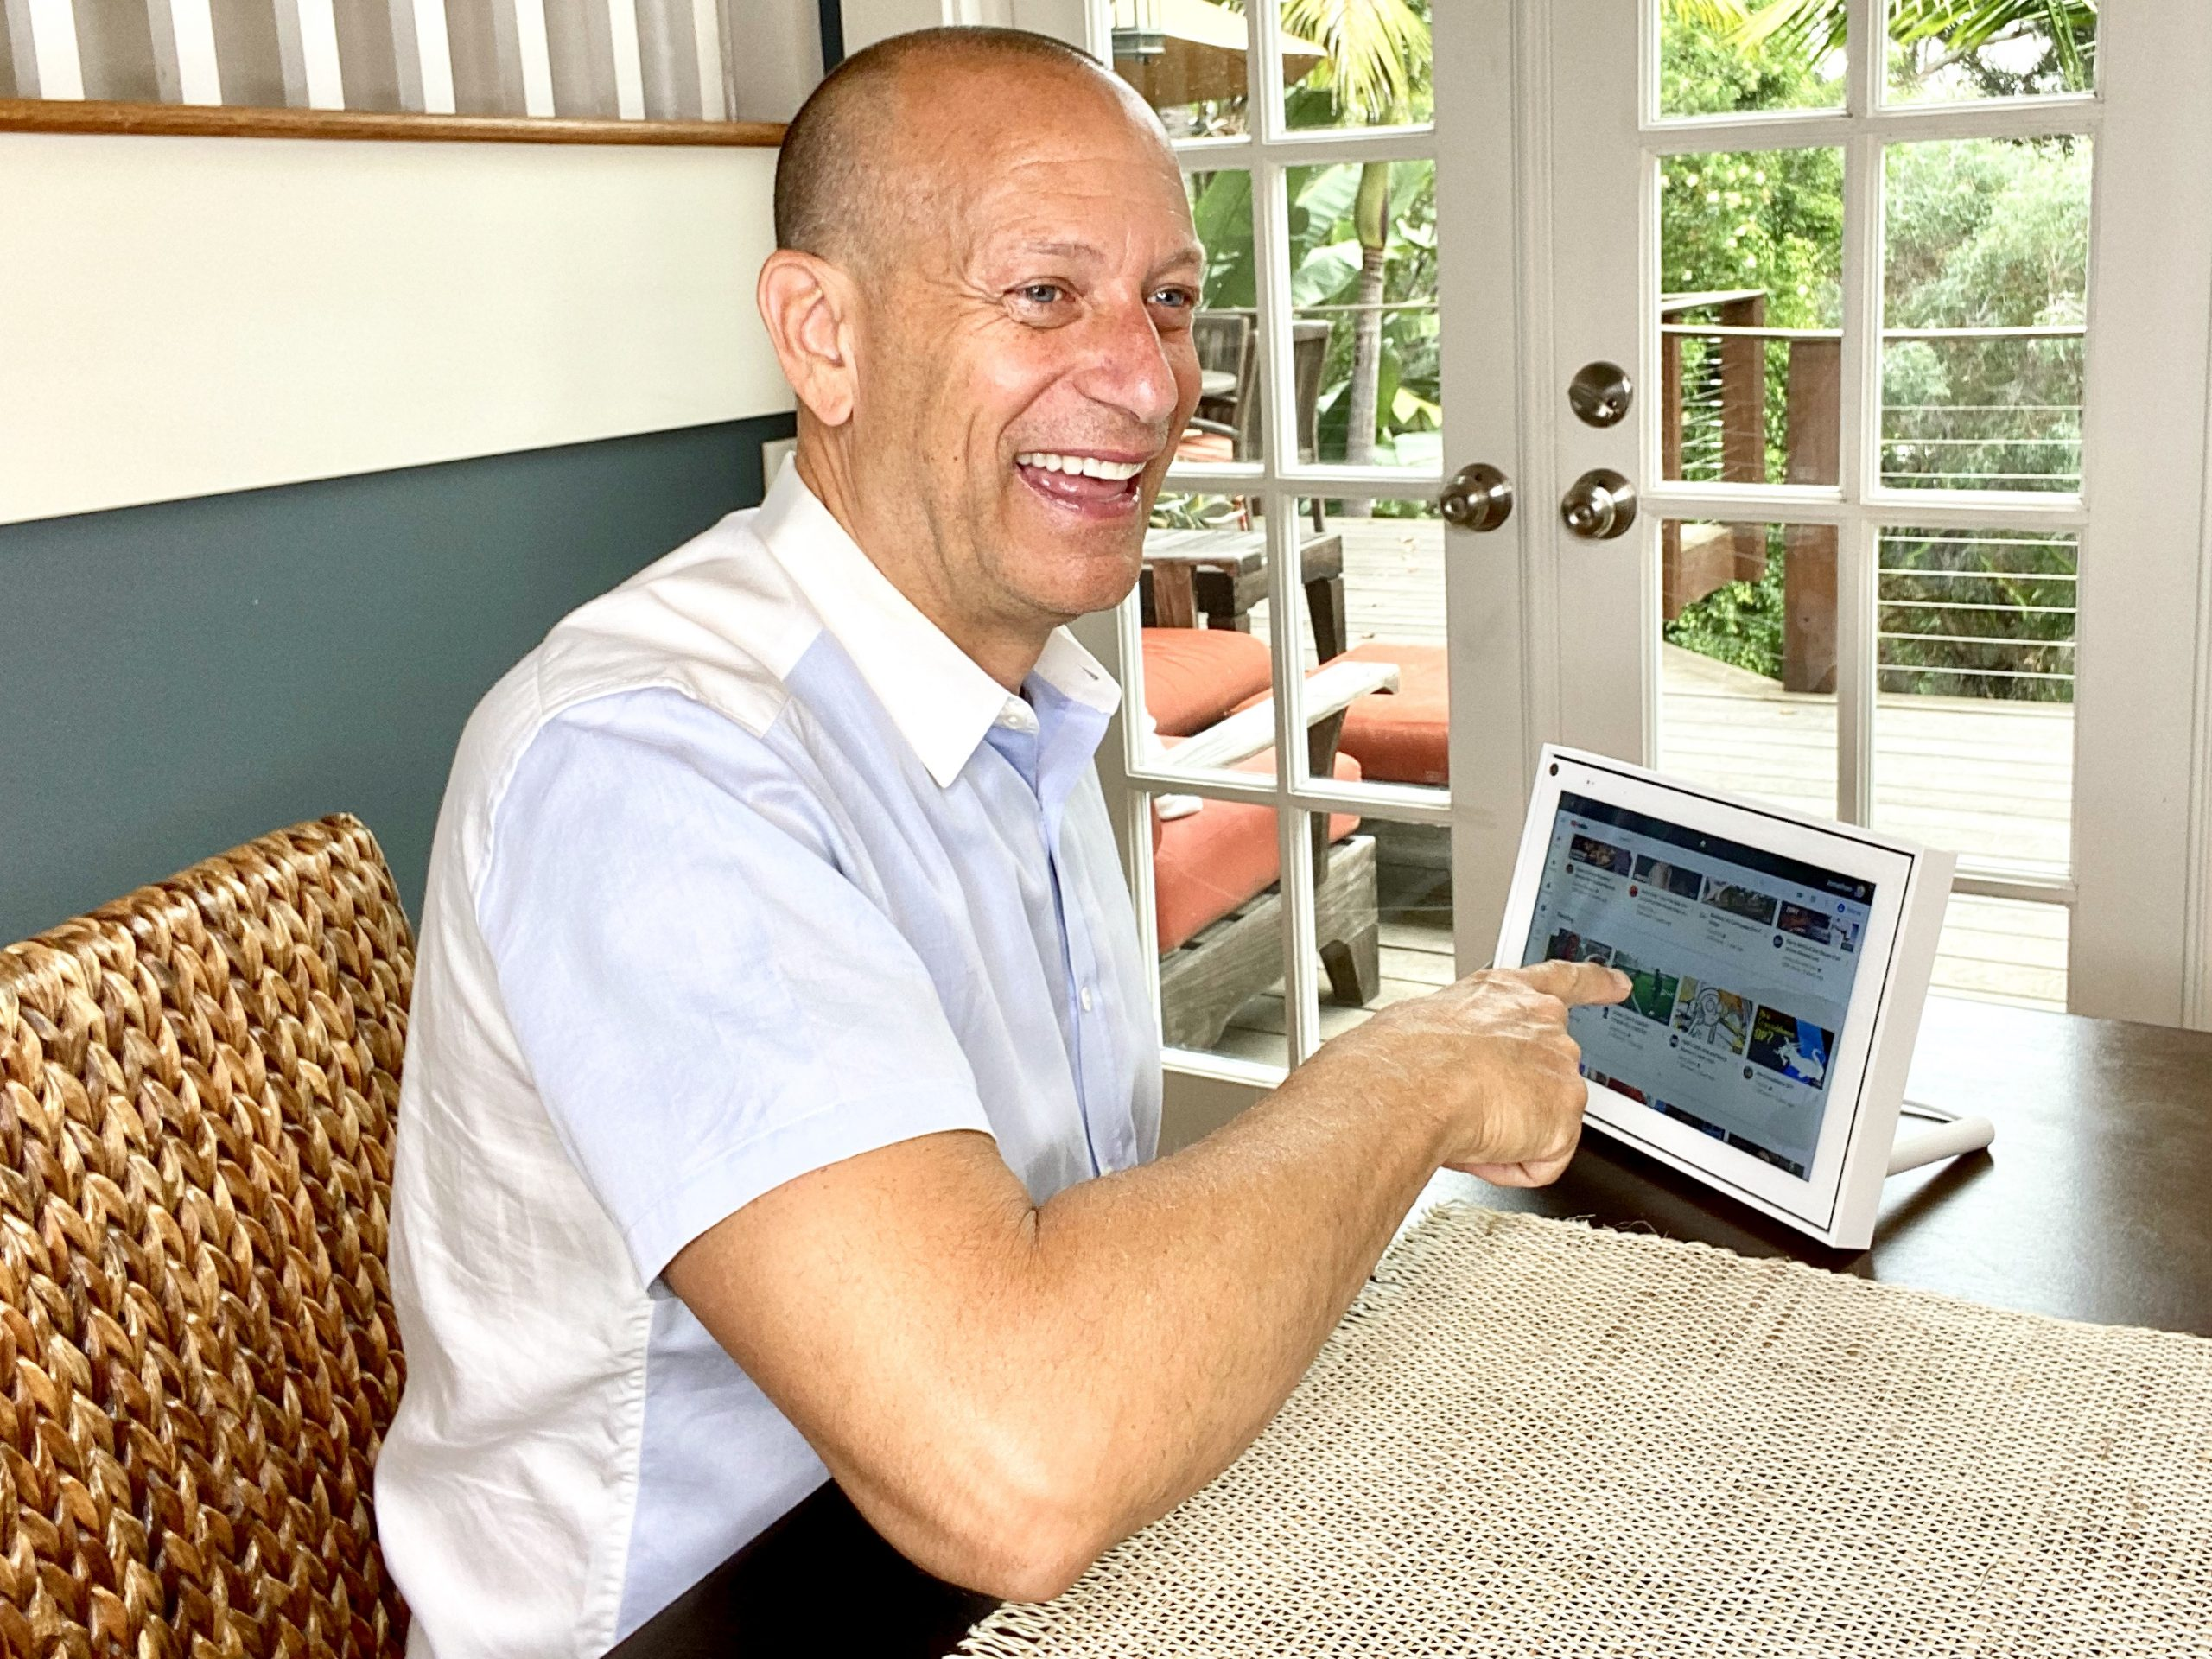 Man watching videos on Portal by Facebook